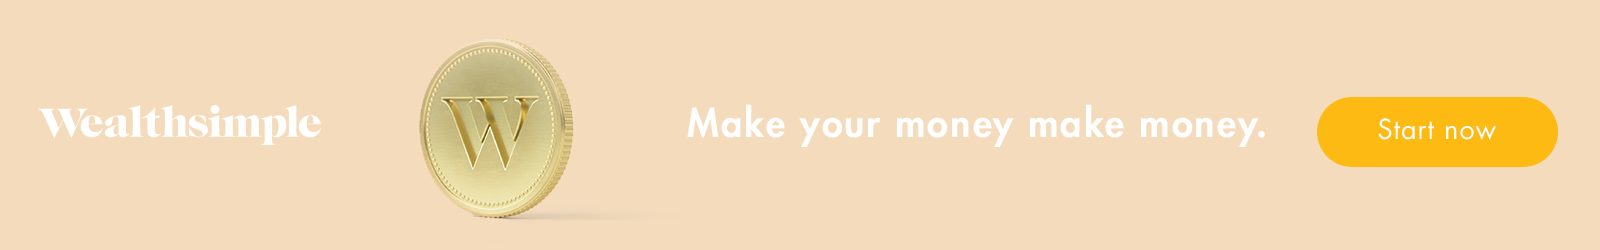 Wealthsimple Banner - Make your money make money.